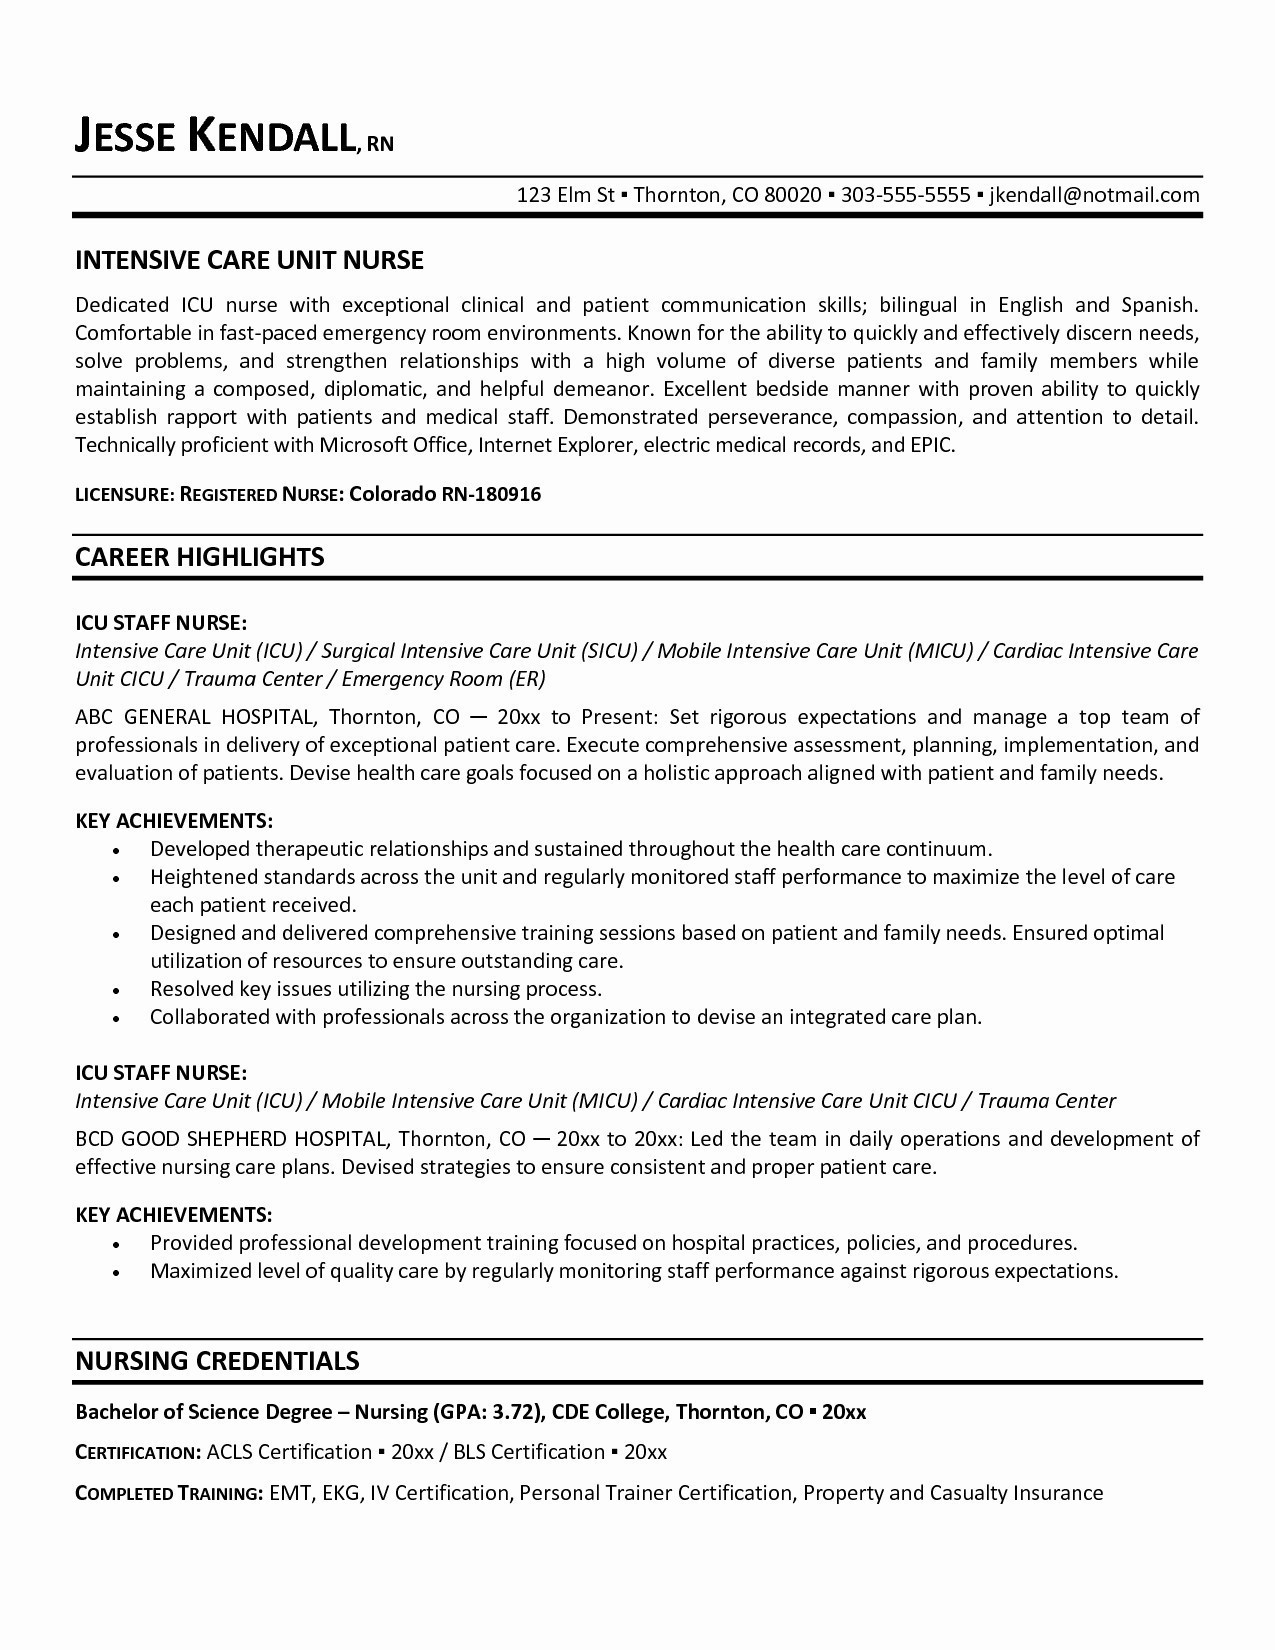 New Grad Nurse Resume New Grad Nursing Resume Template Sample Rn Resume Examples Awesome Fresh Good Nursing Resume Elegant Nurse Of New Grad Nursing Resume Template new grad nurse resume|wikiresume.com